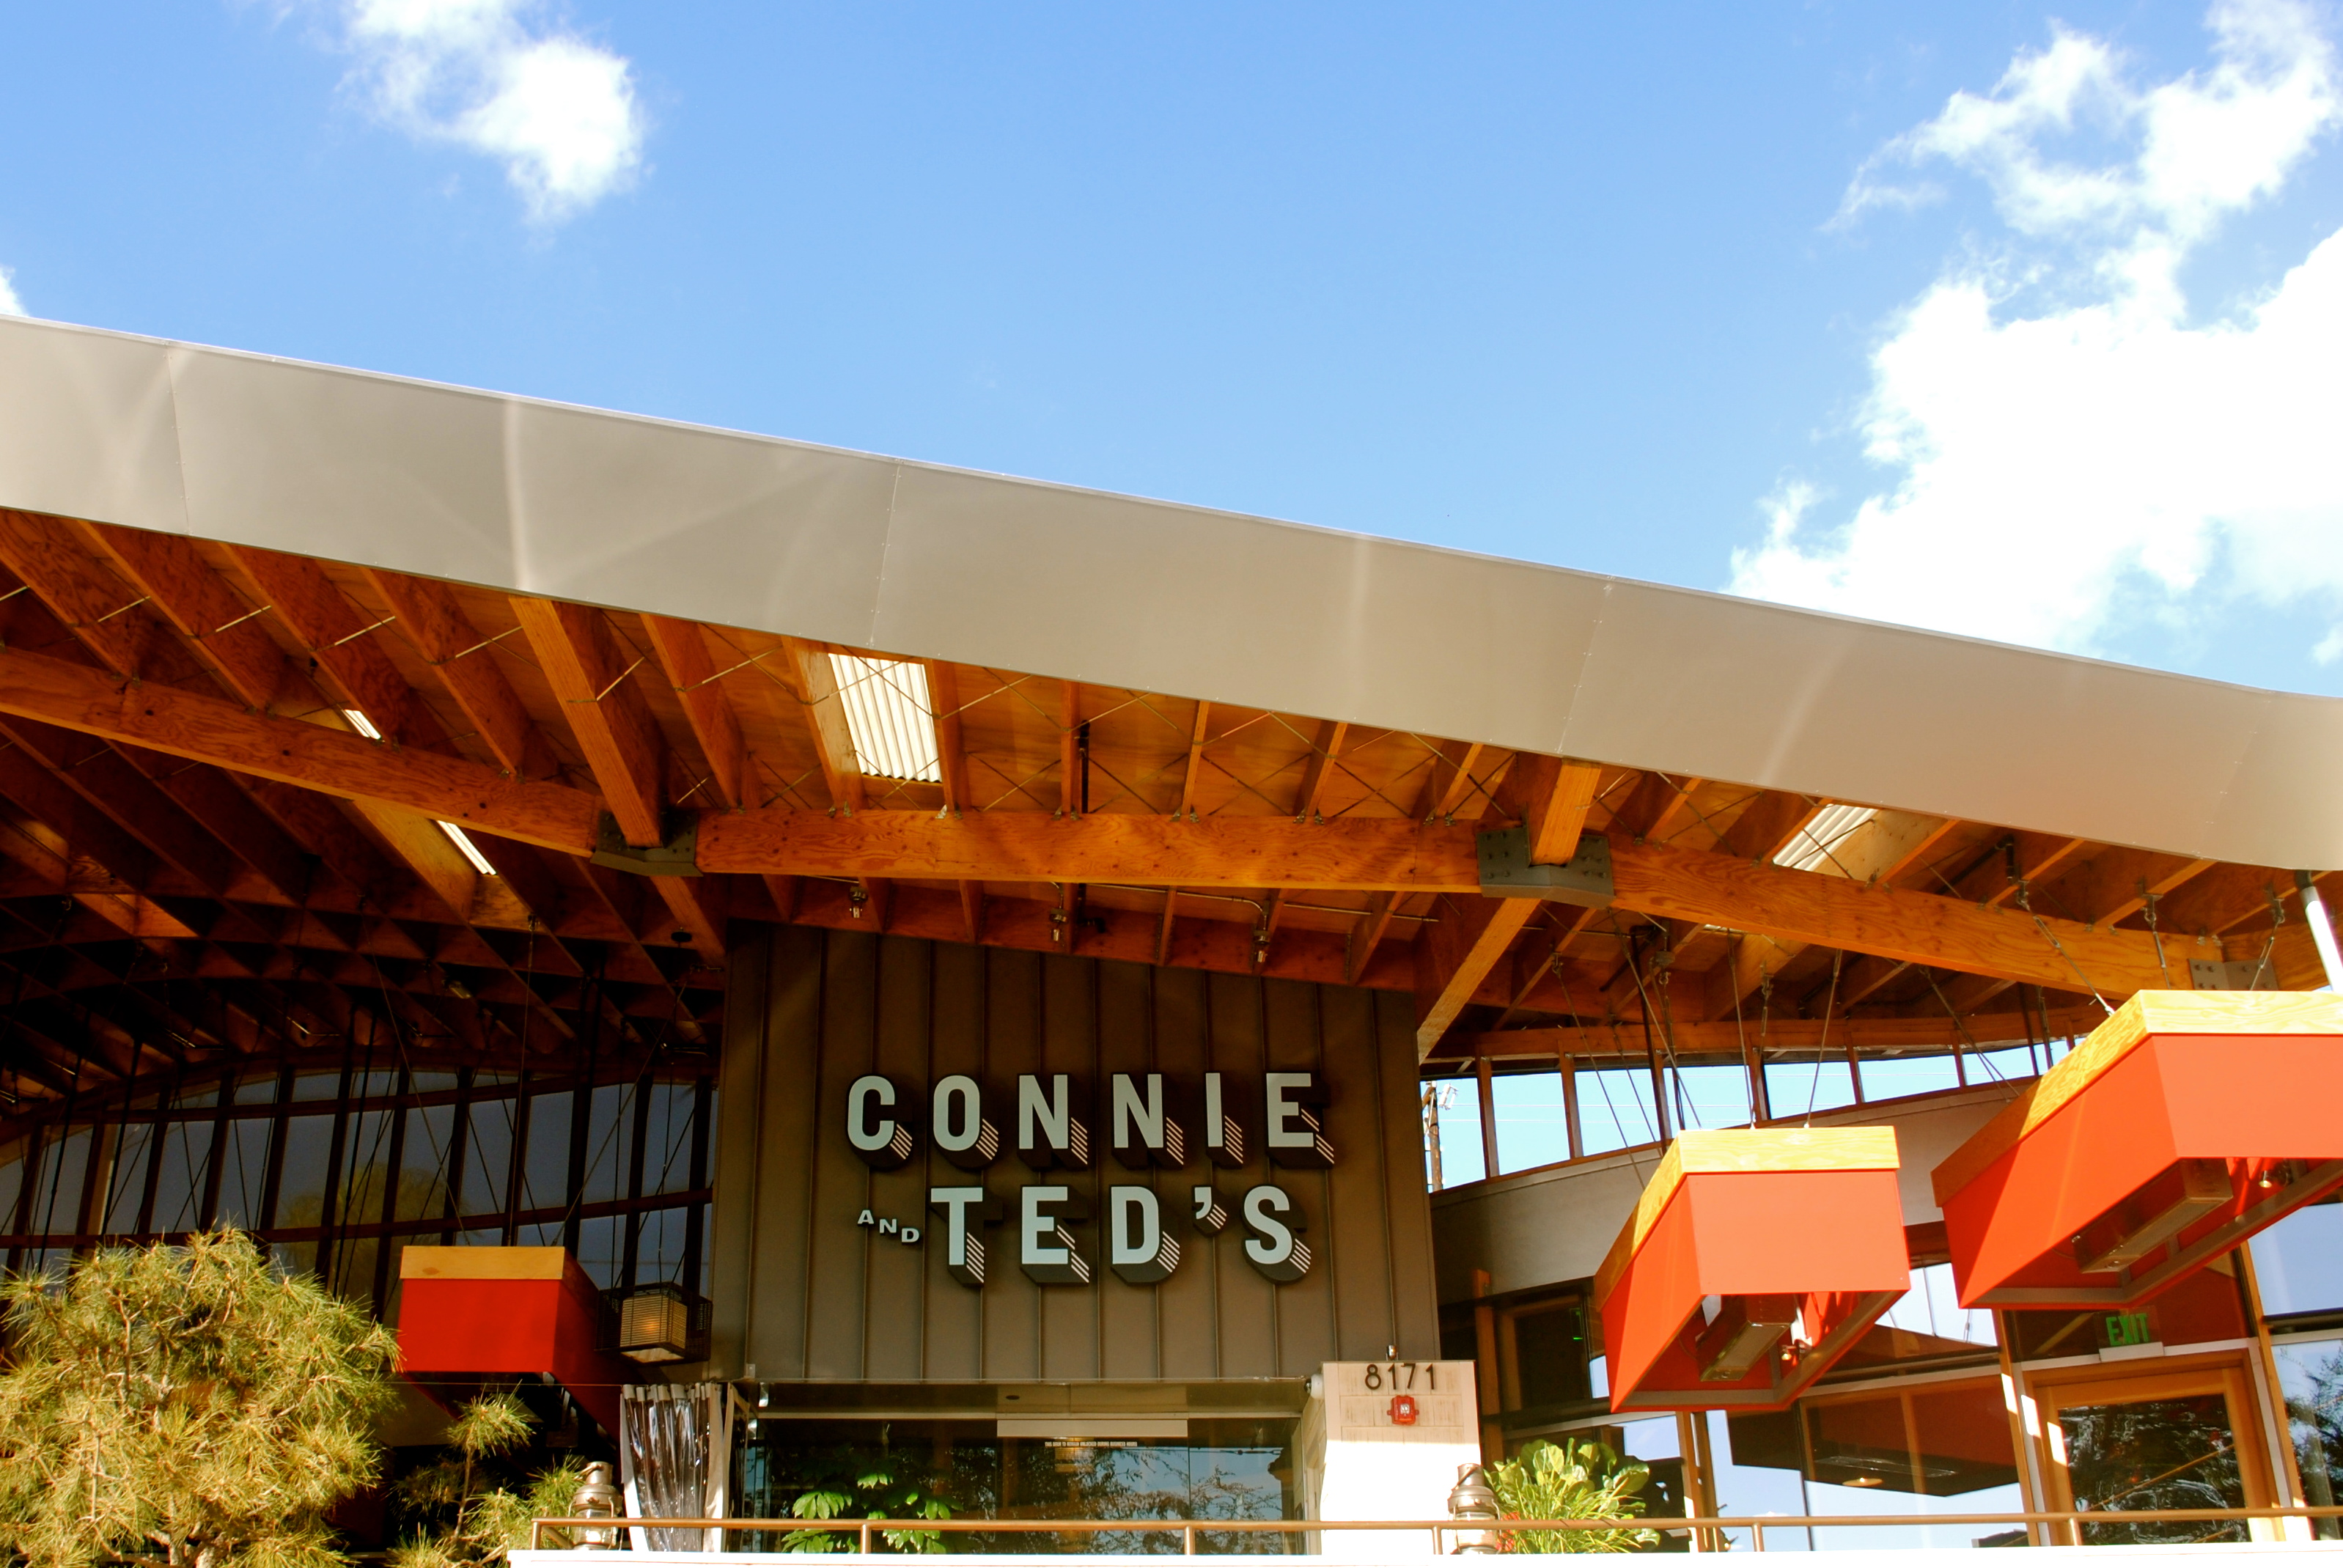 Connie & Ted's, West Hollywood